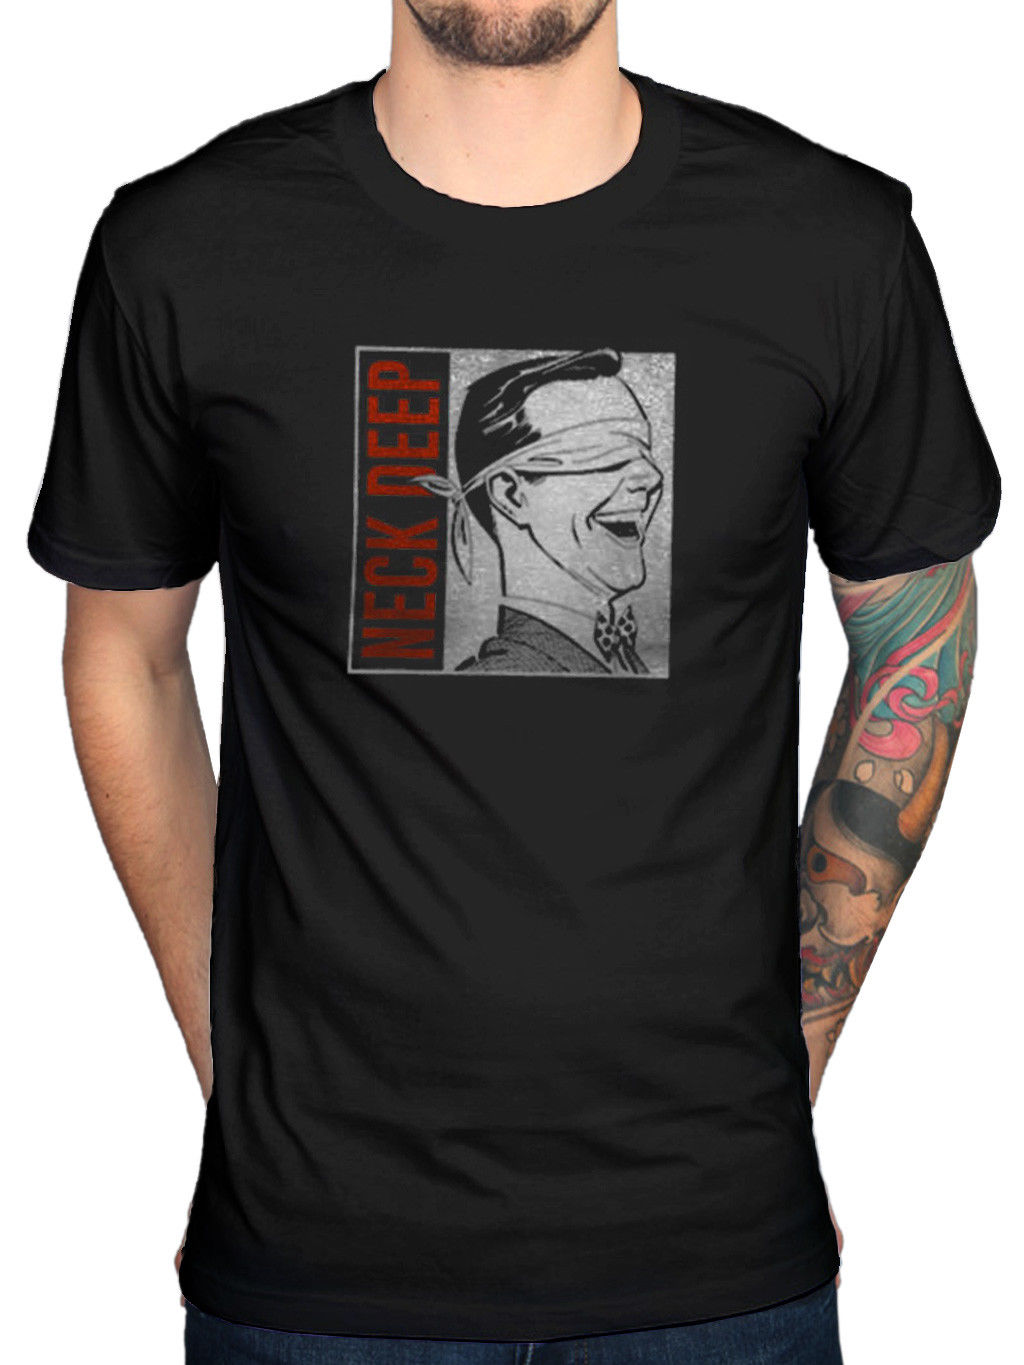 Official Neck Deep Blindfold T-Shirt The Peace And The Panic Wishful Thinking Fashion